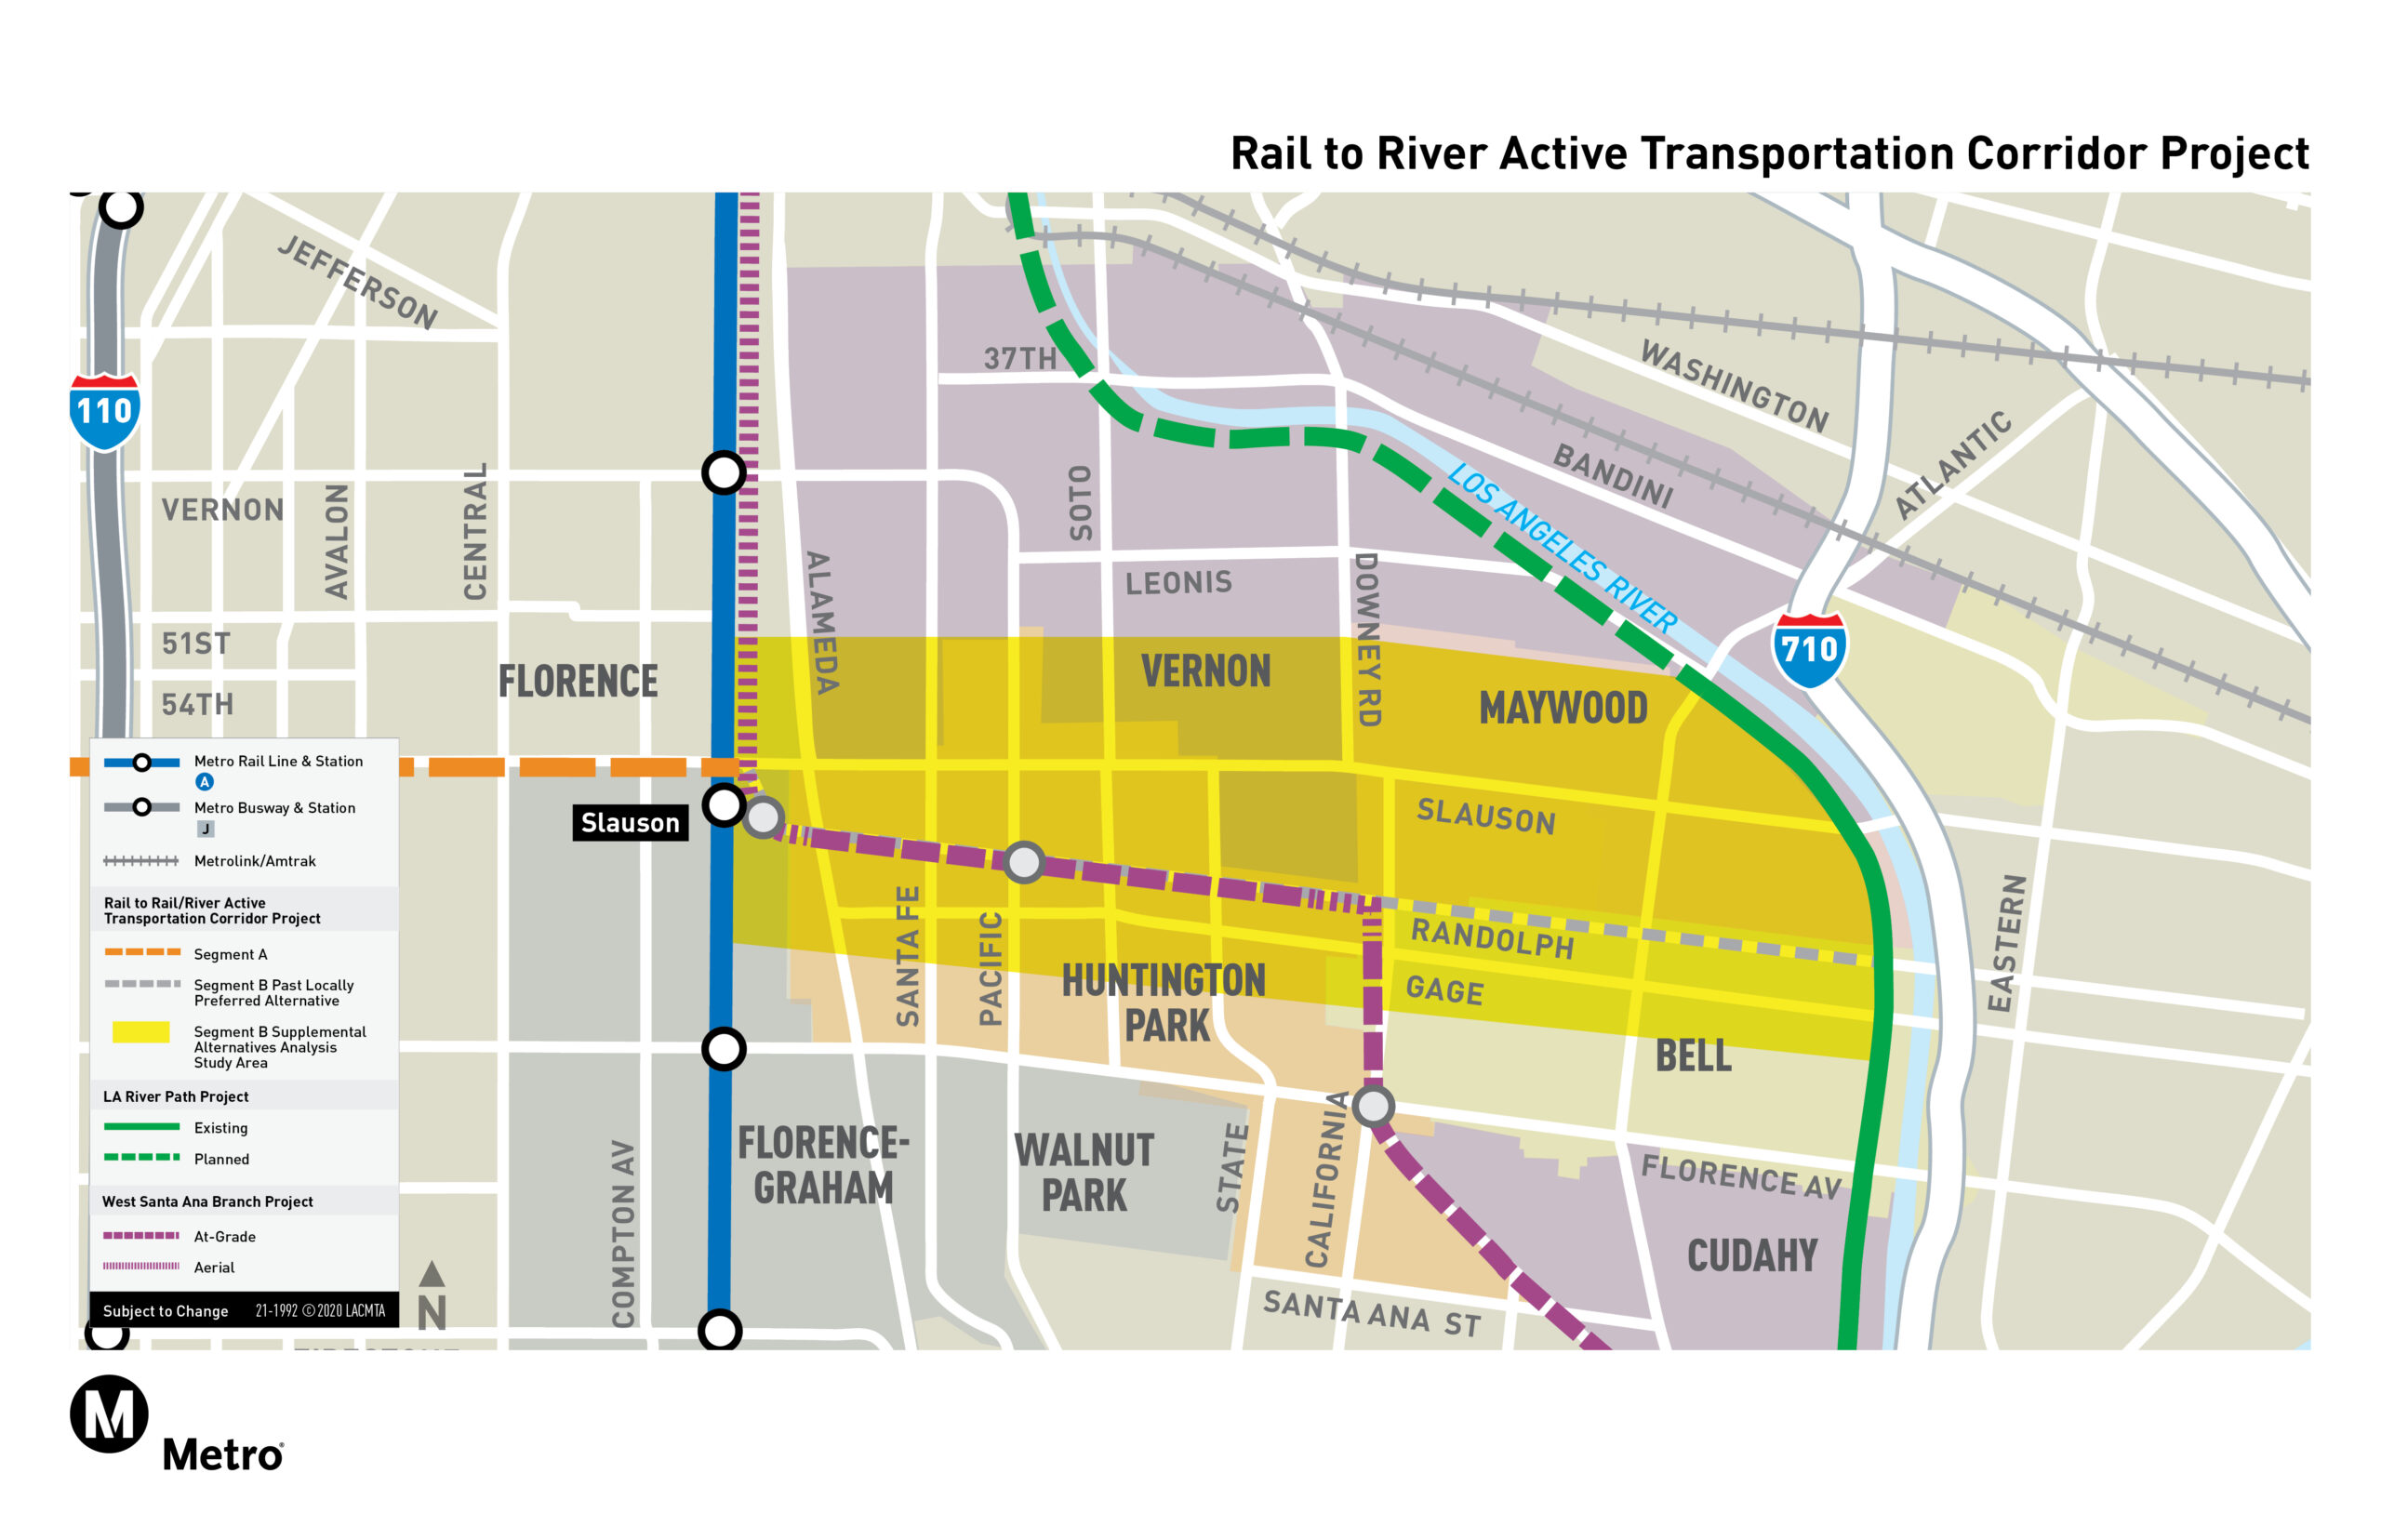 Rail to River Active Transportation Corridor Project Map